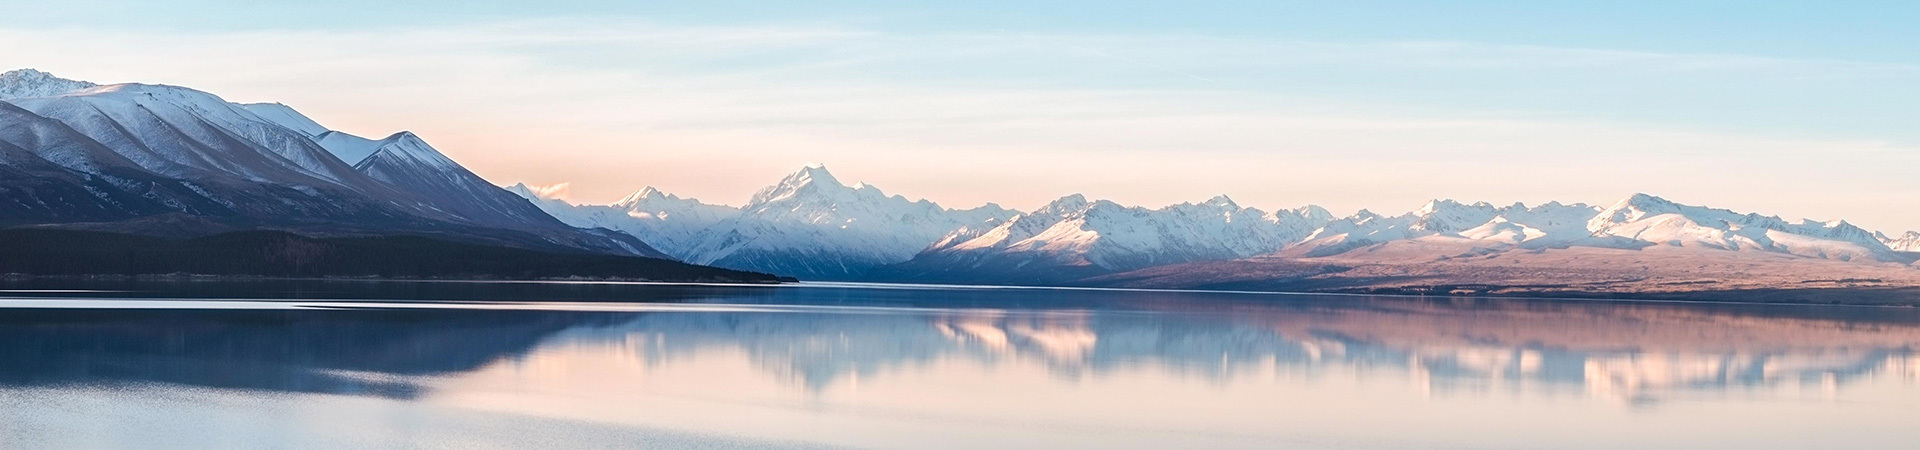 Mt Cook, Lake Pukaki